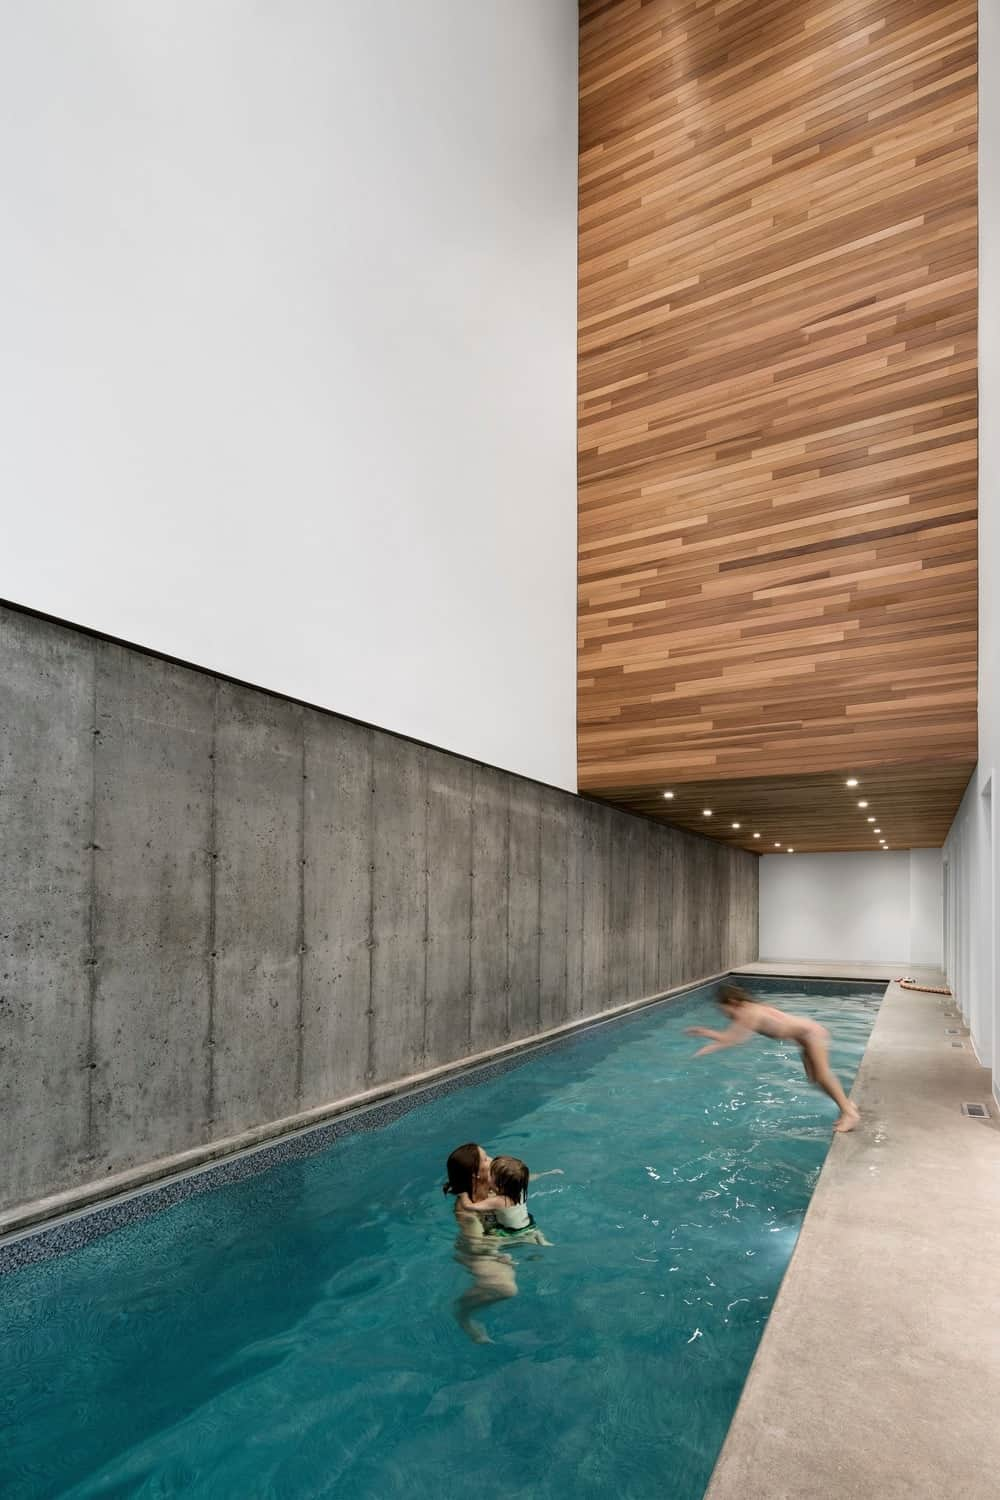 This indoor pool is an excellent option if you have a lot of kids in your house or if you are a true swimmer who loves to take laps in the water. It is quite a large swimming pool that extends from one end of the area to the other with a huge drop-down wooden ceiling full of small, yellow lights.